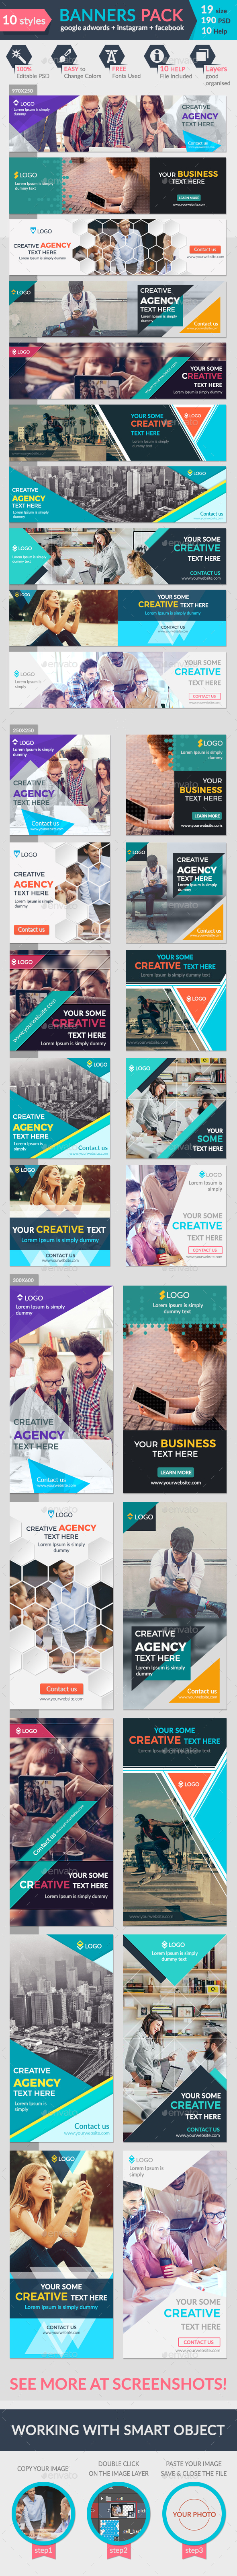 Banners Pack-2 - Banners & Ads Web Elements